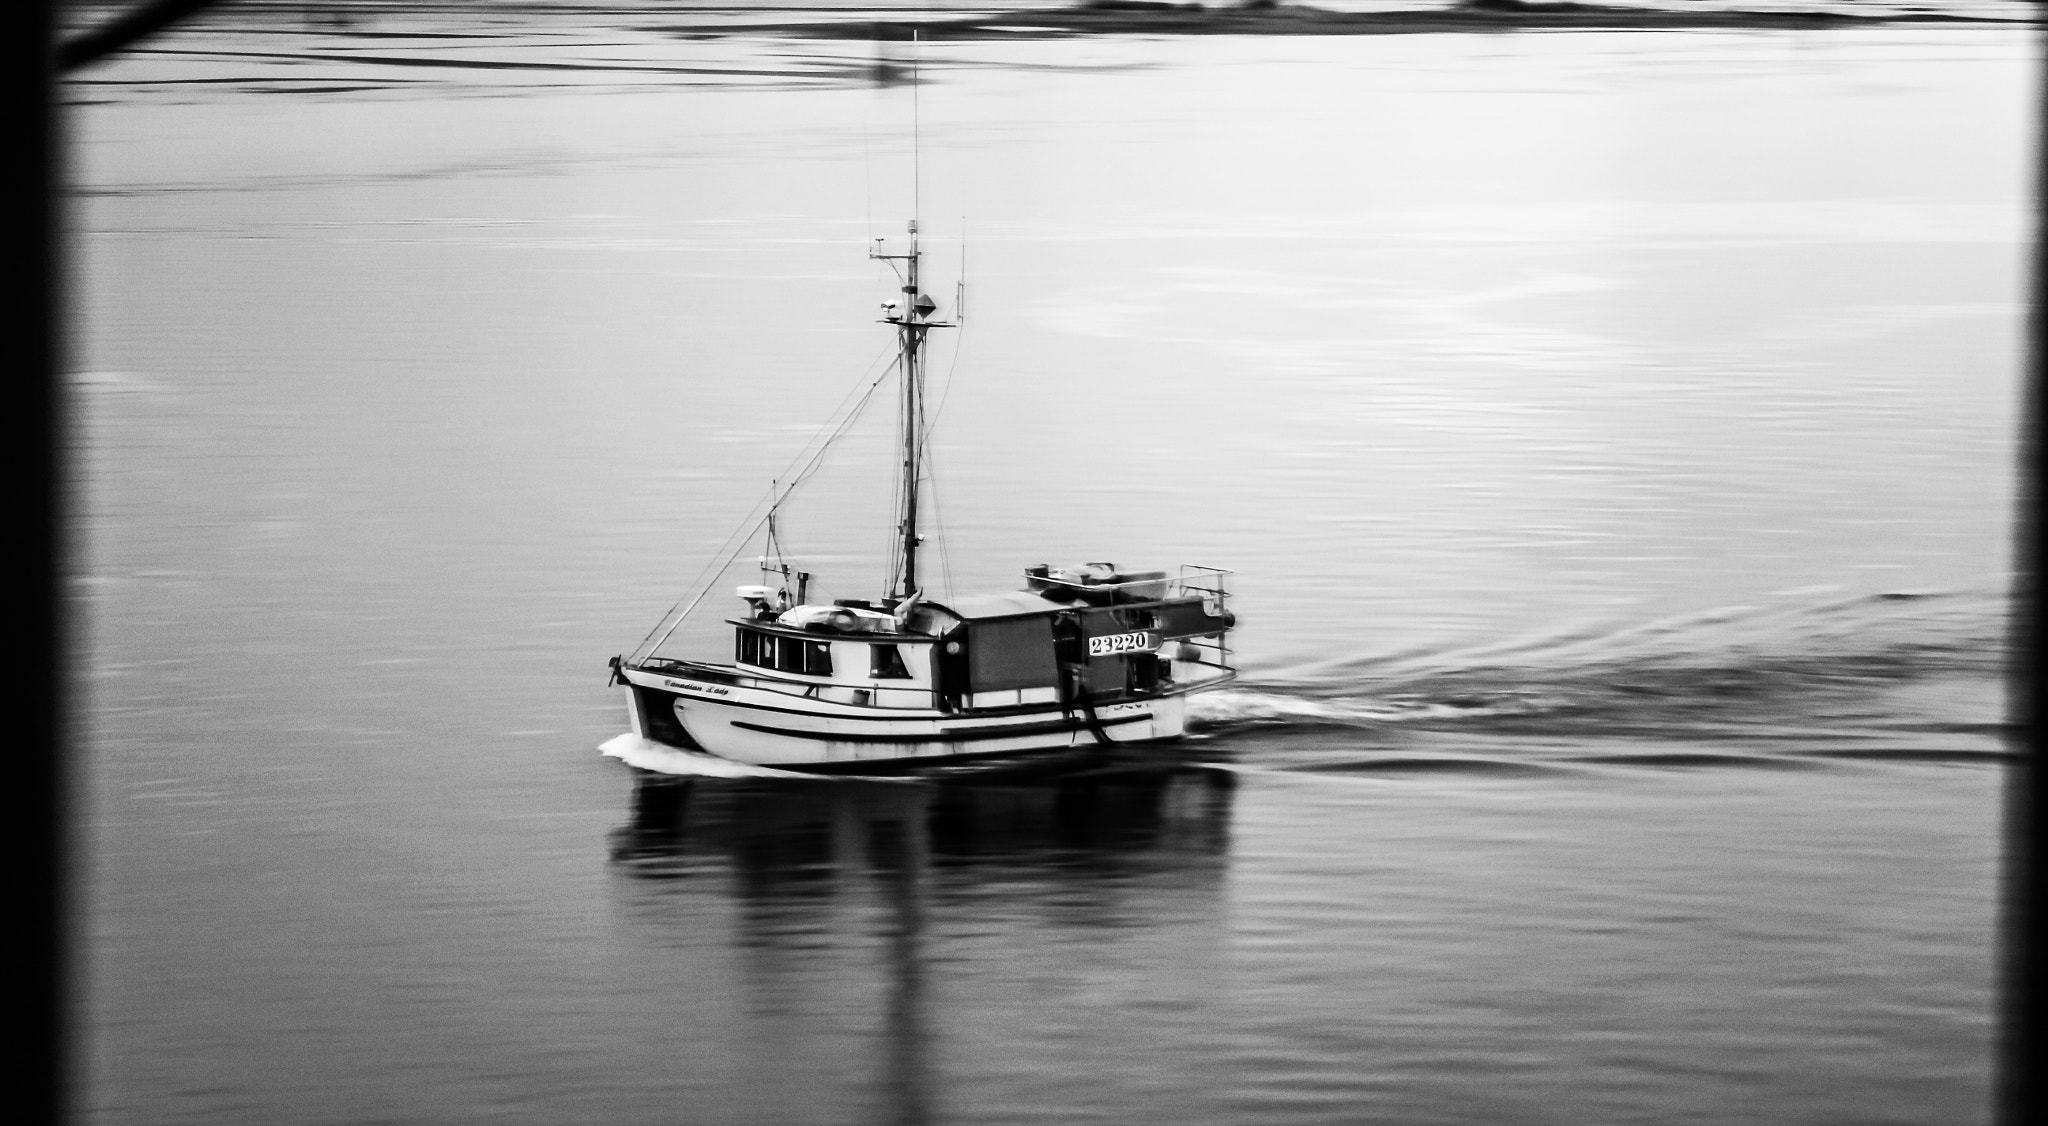 Photograph Fishing Boat by Darcey Millar on 500px